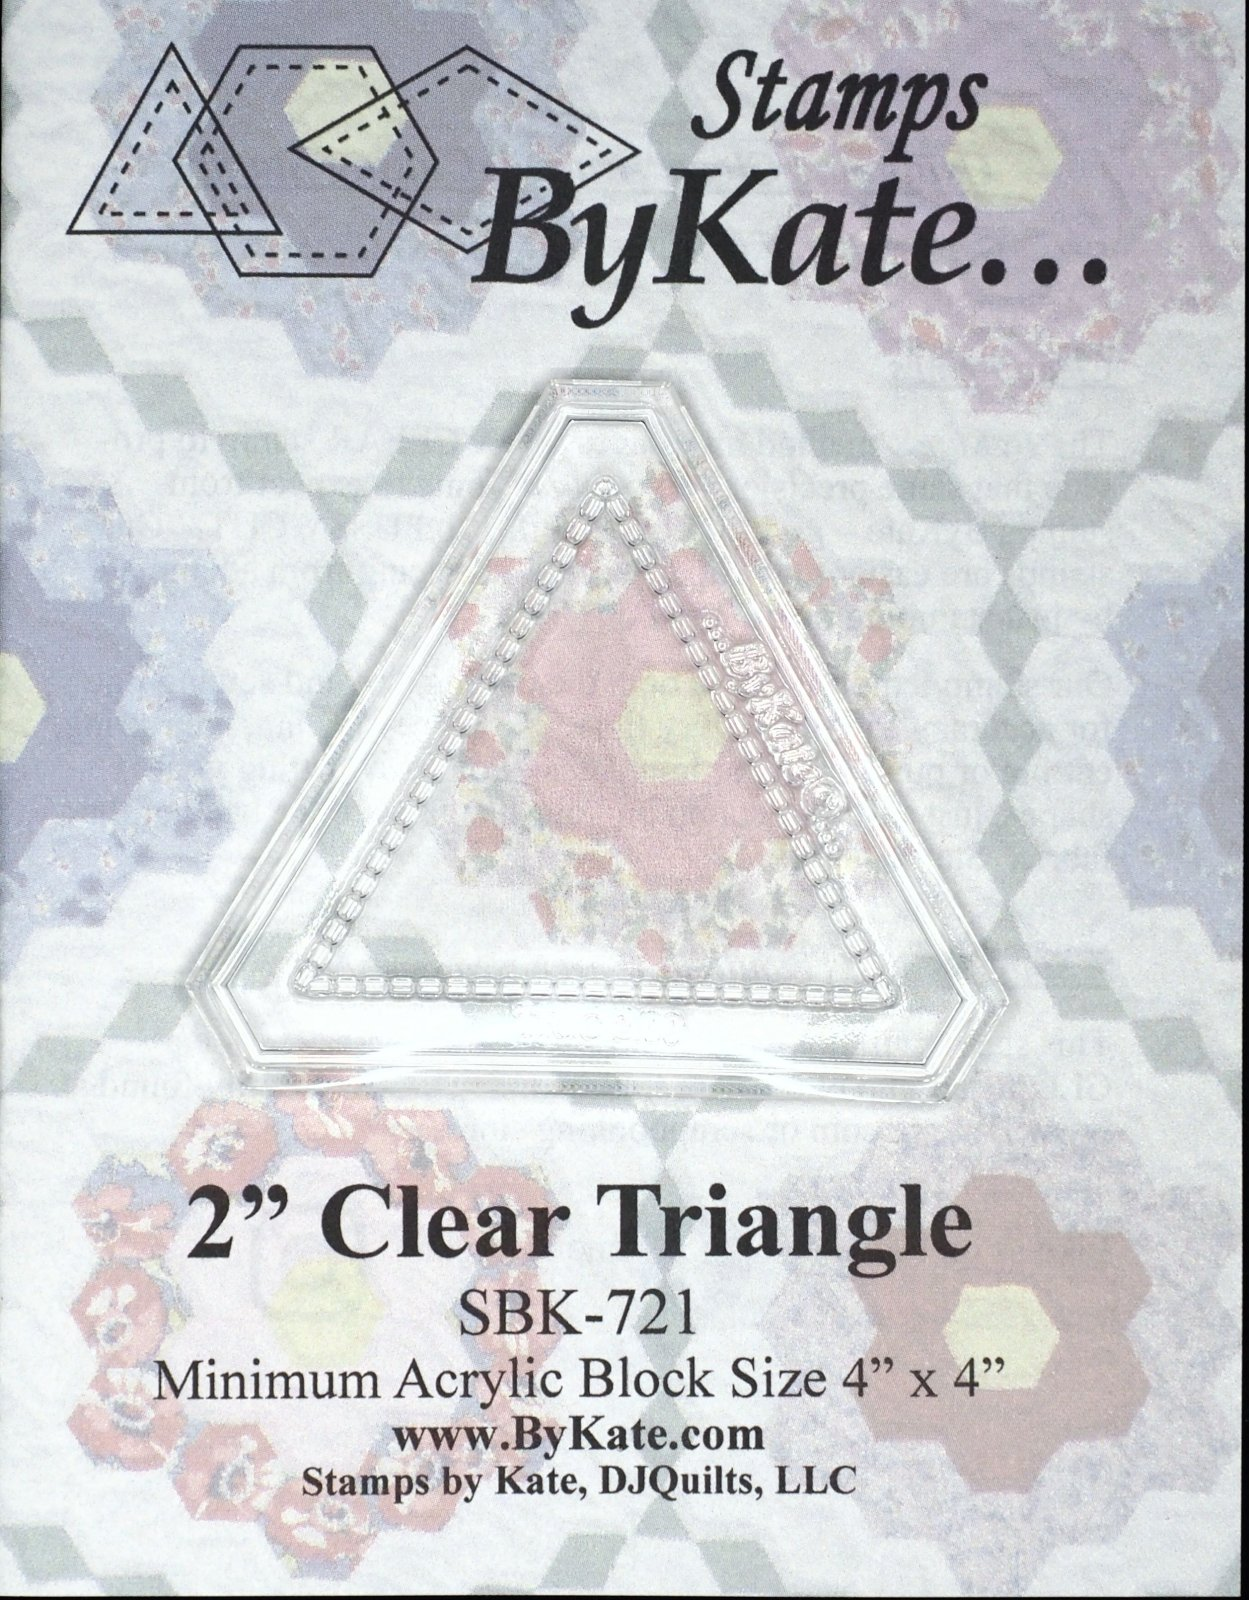 Clear Triangle Stamps